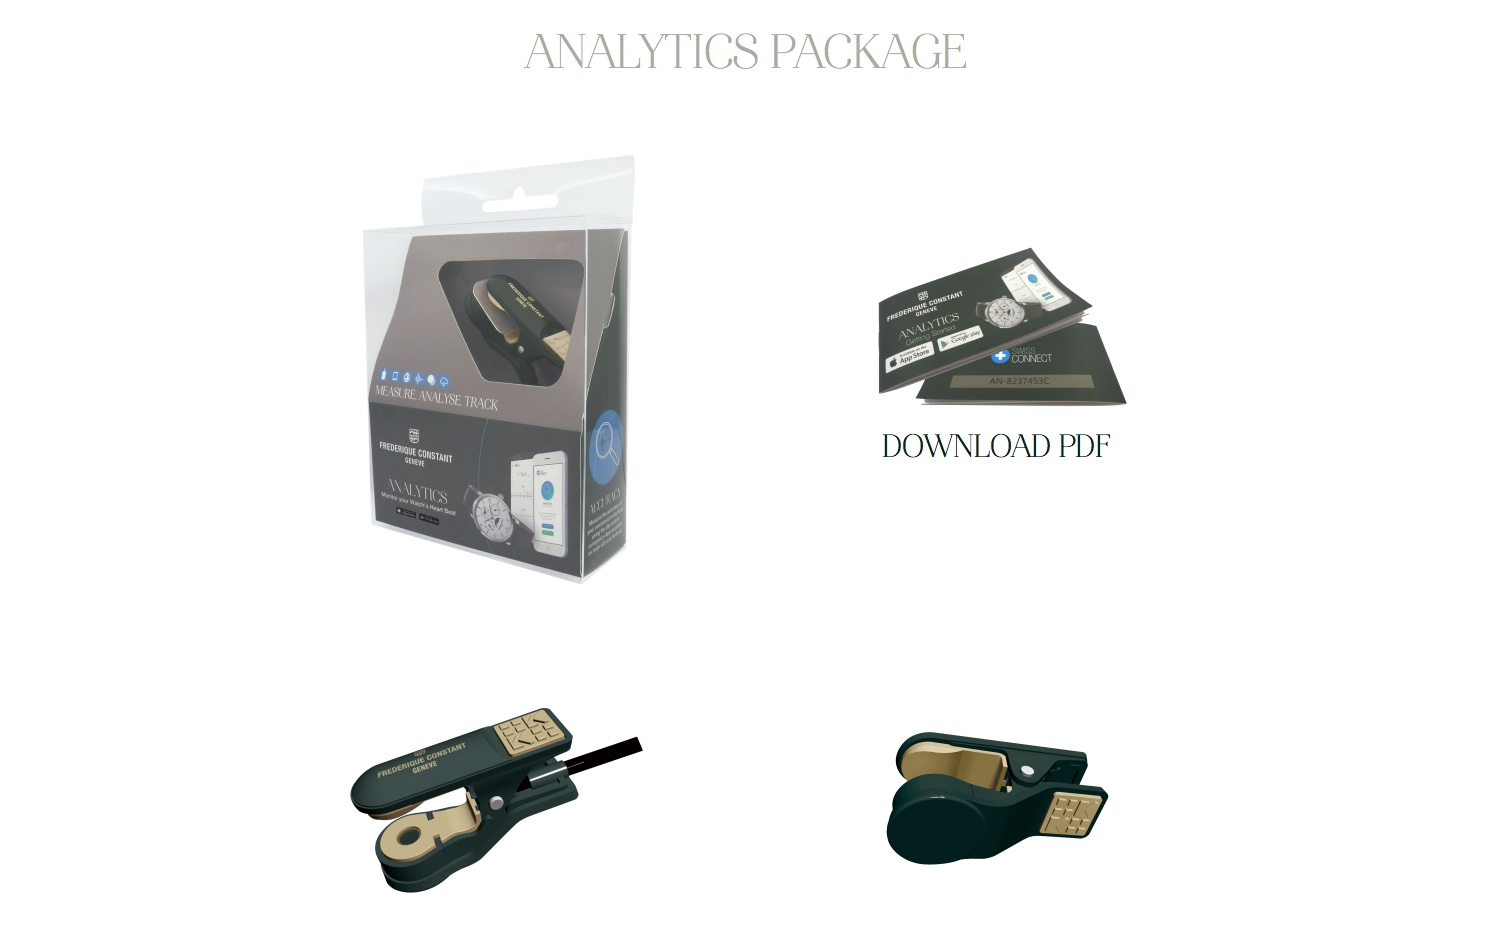 Frederique Constant Analytics Clip – Real Time Analytics For Your Watch